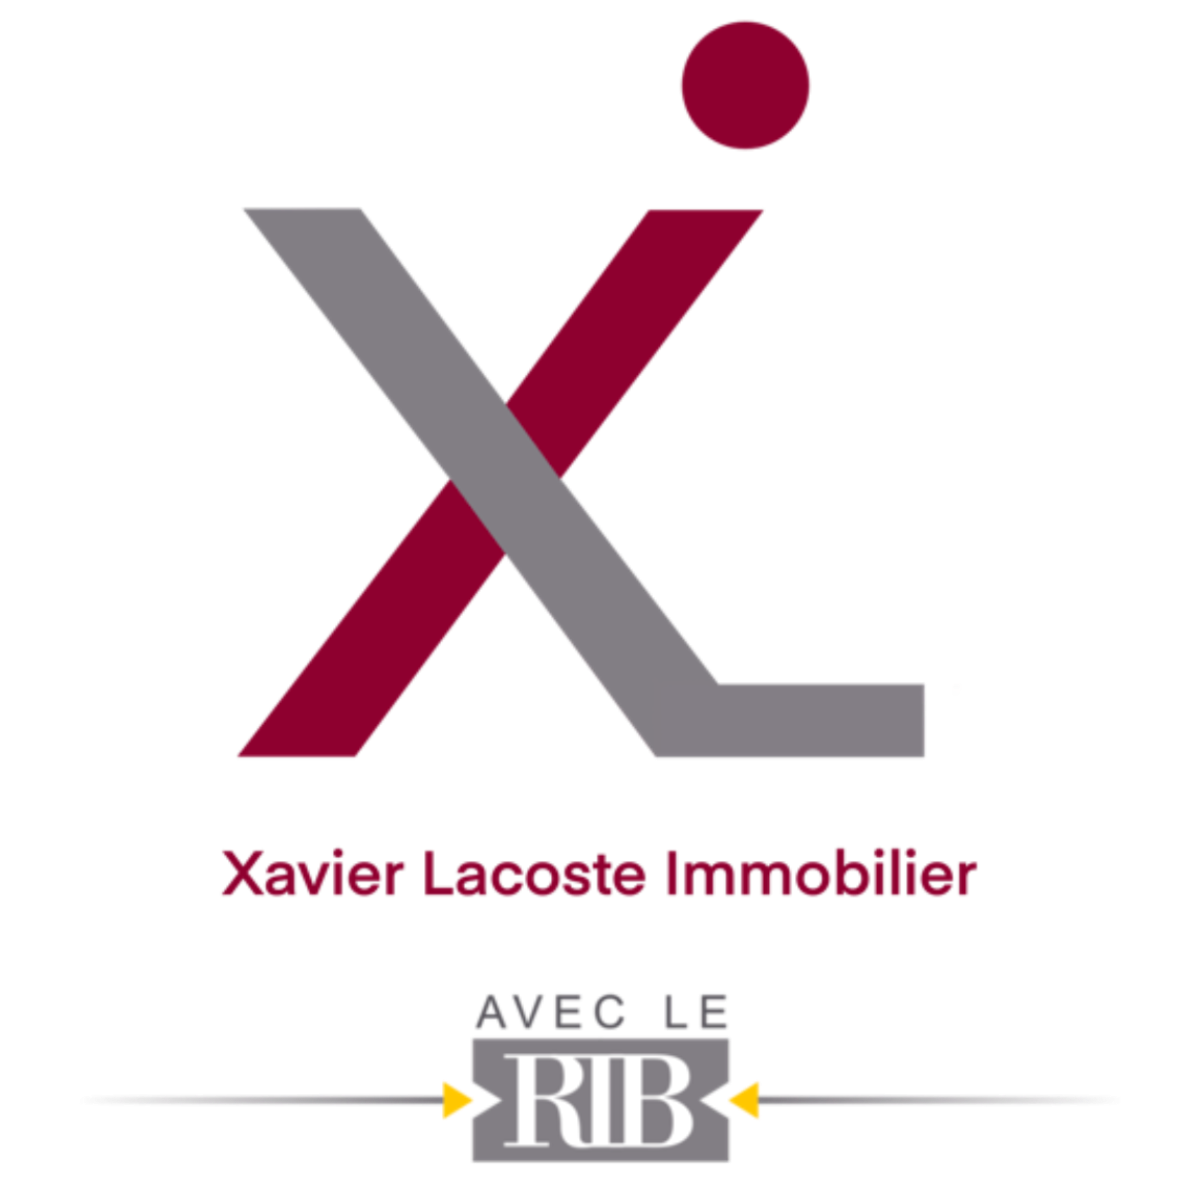 Xavier Lacoste Immobilier